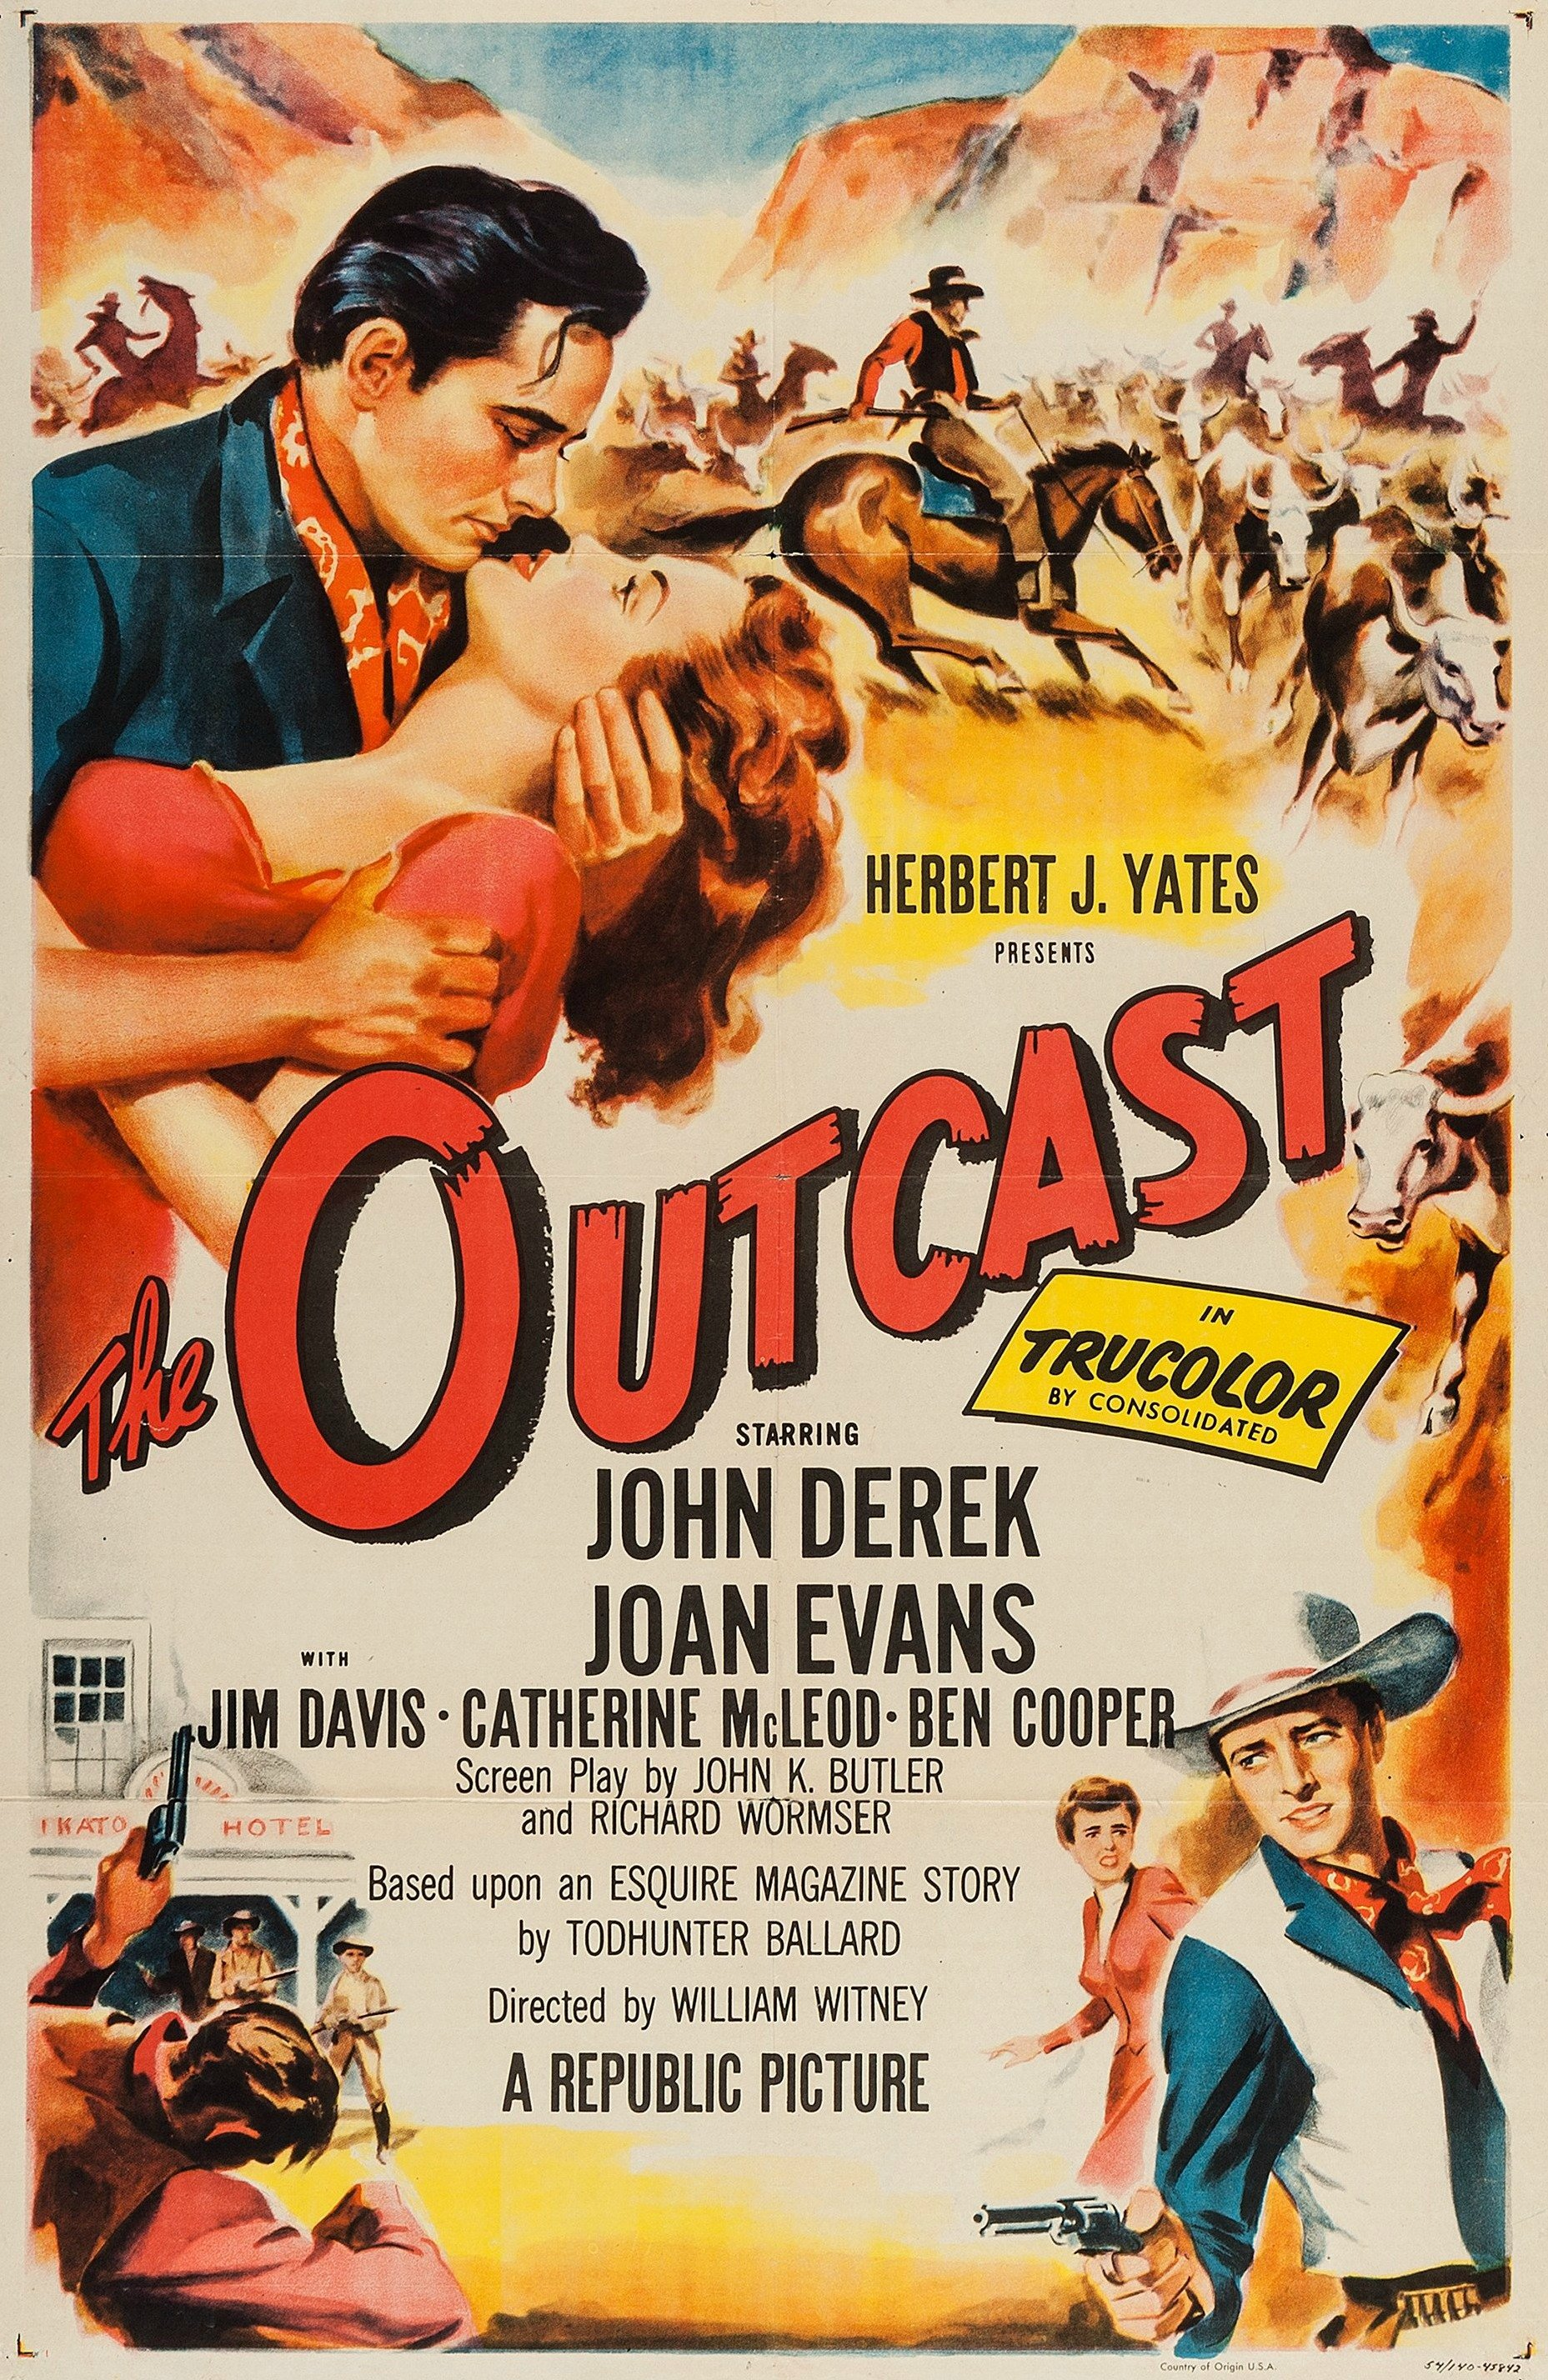 image The Outcast Watch Full Movie Free Online